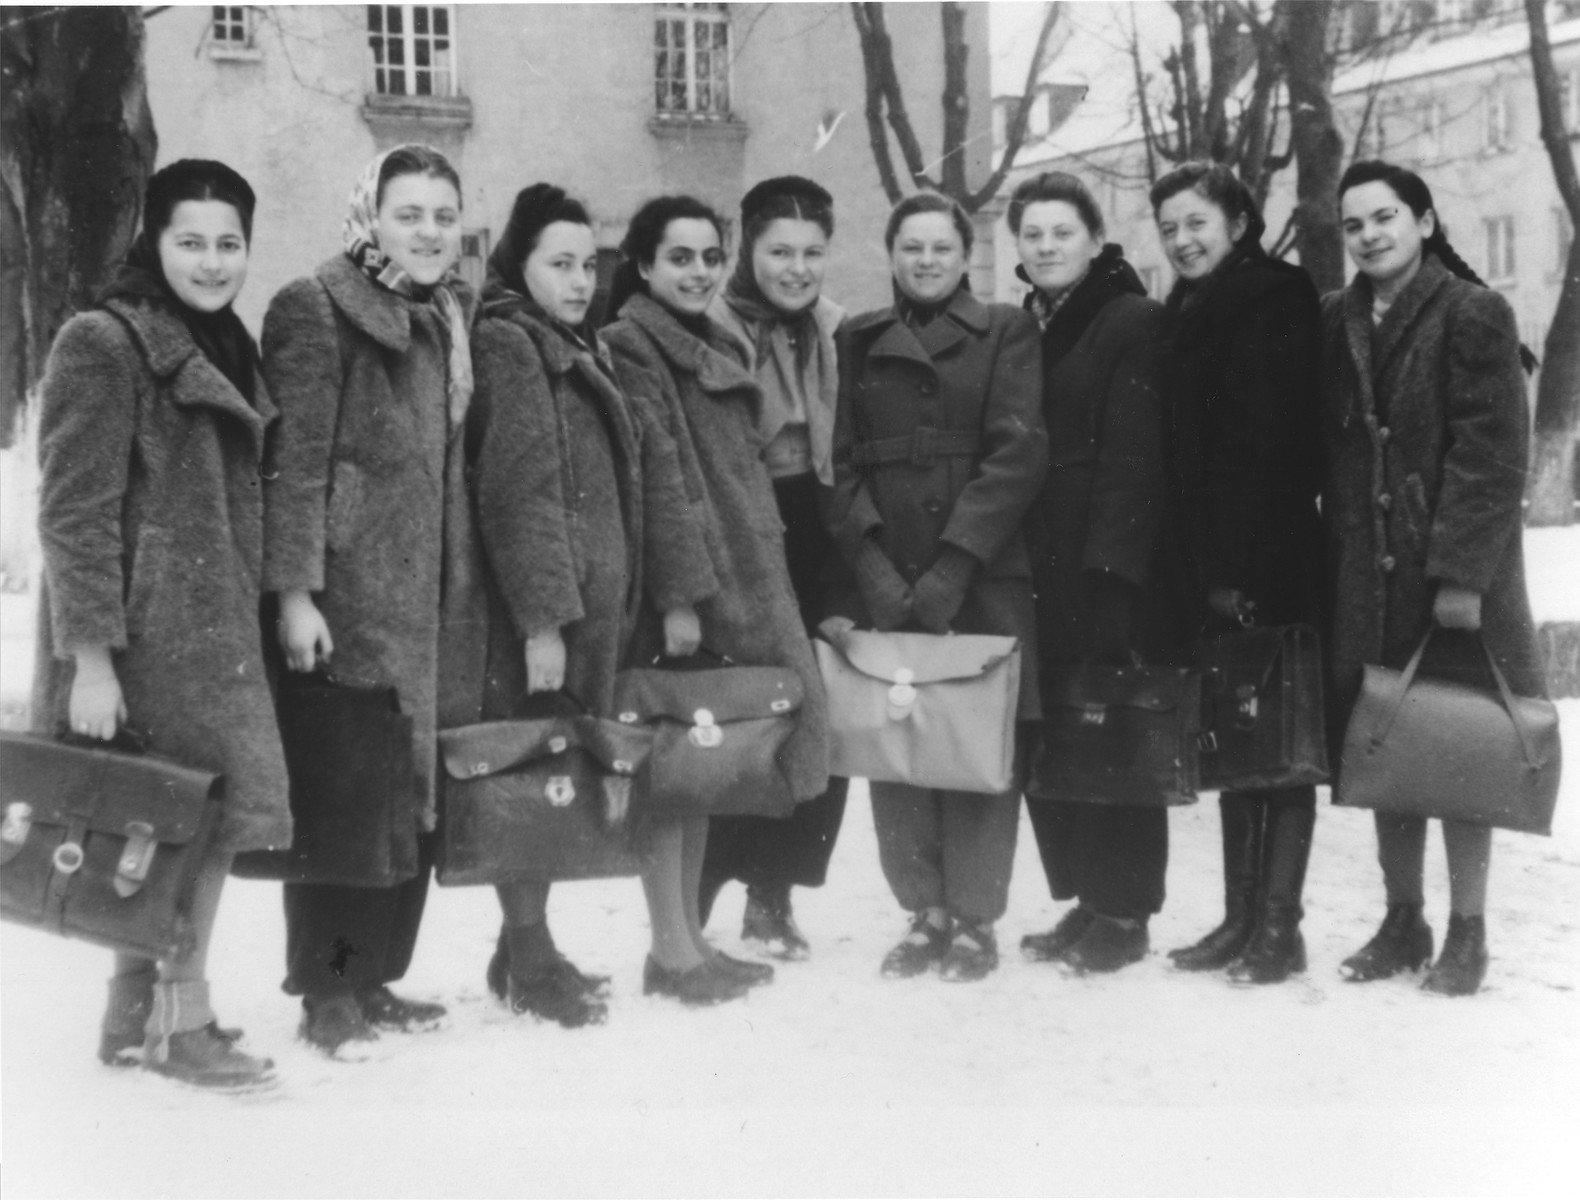 A group of teenage girls carrying briefcases pose on a snowy street on their way to their high school.  Among those pictured are Ruzia Rozen (left), Lila Rozen (third from the left) and Lila Rajs (center).